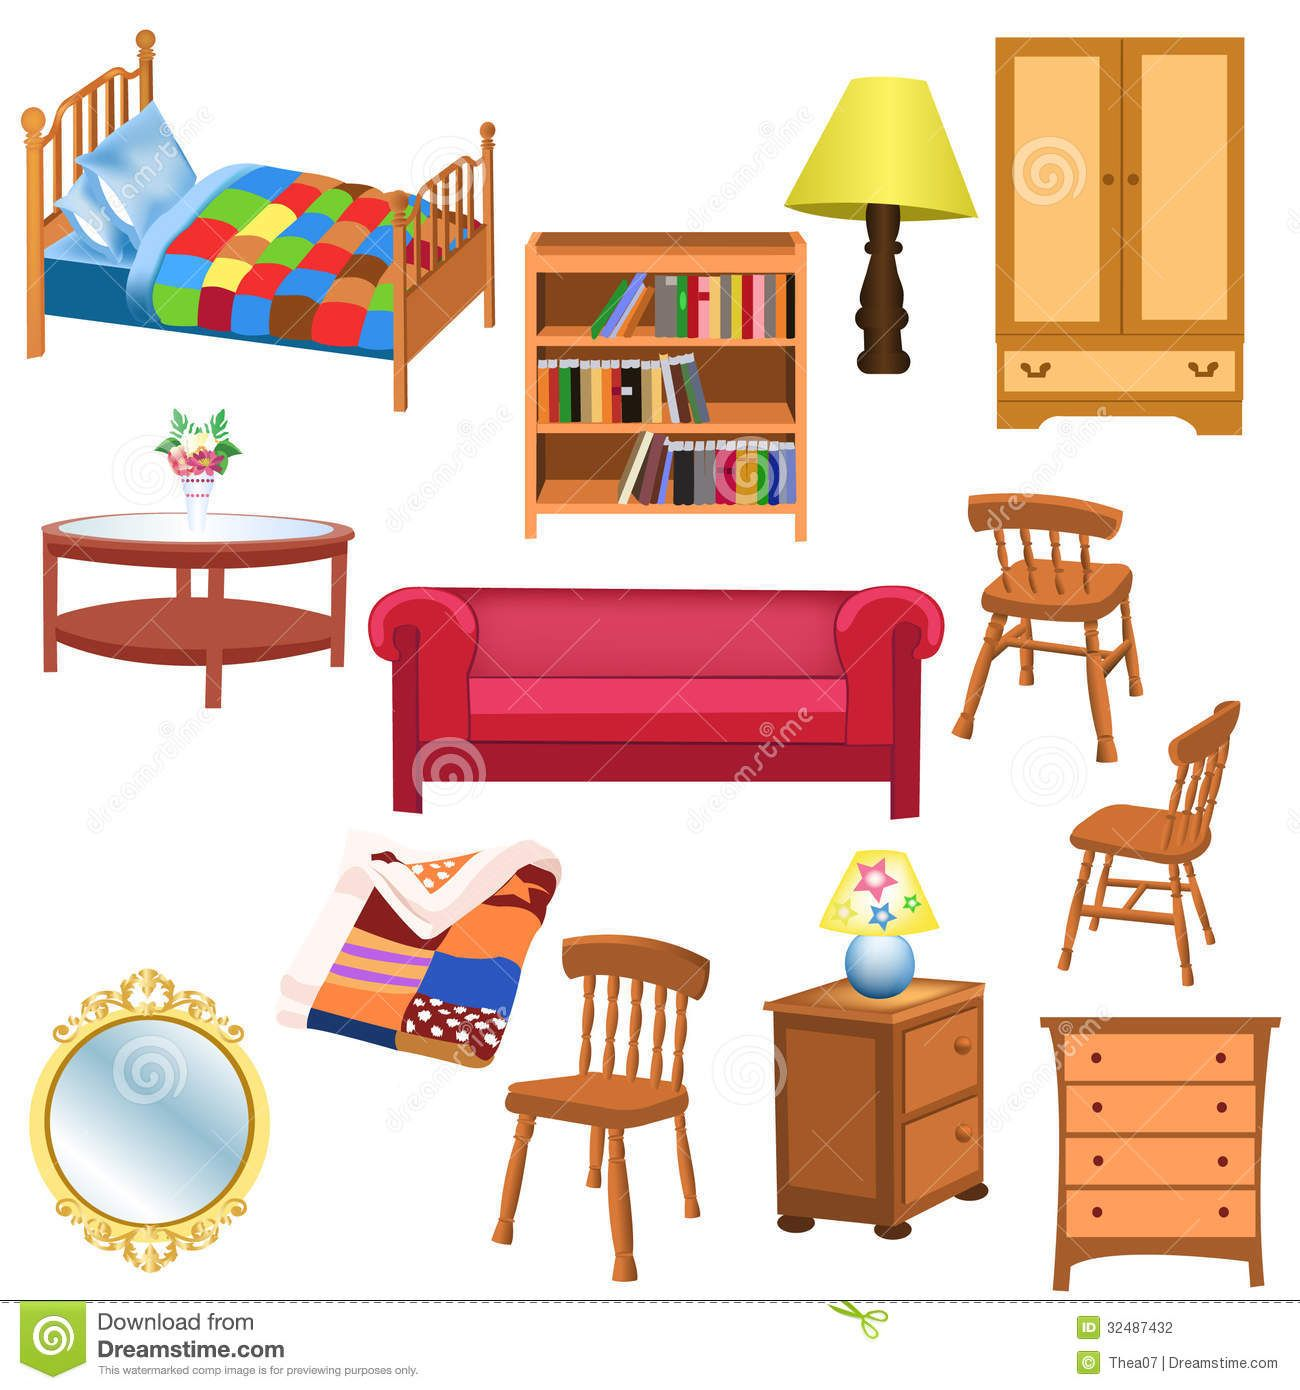 Living Room Furniture Clipart 家庭用品, 家, 教育